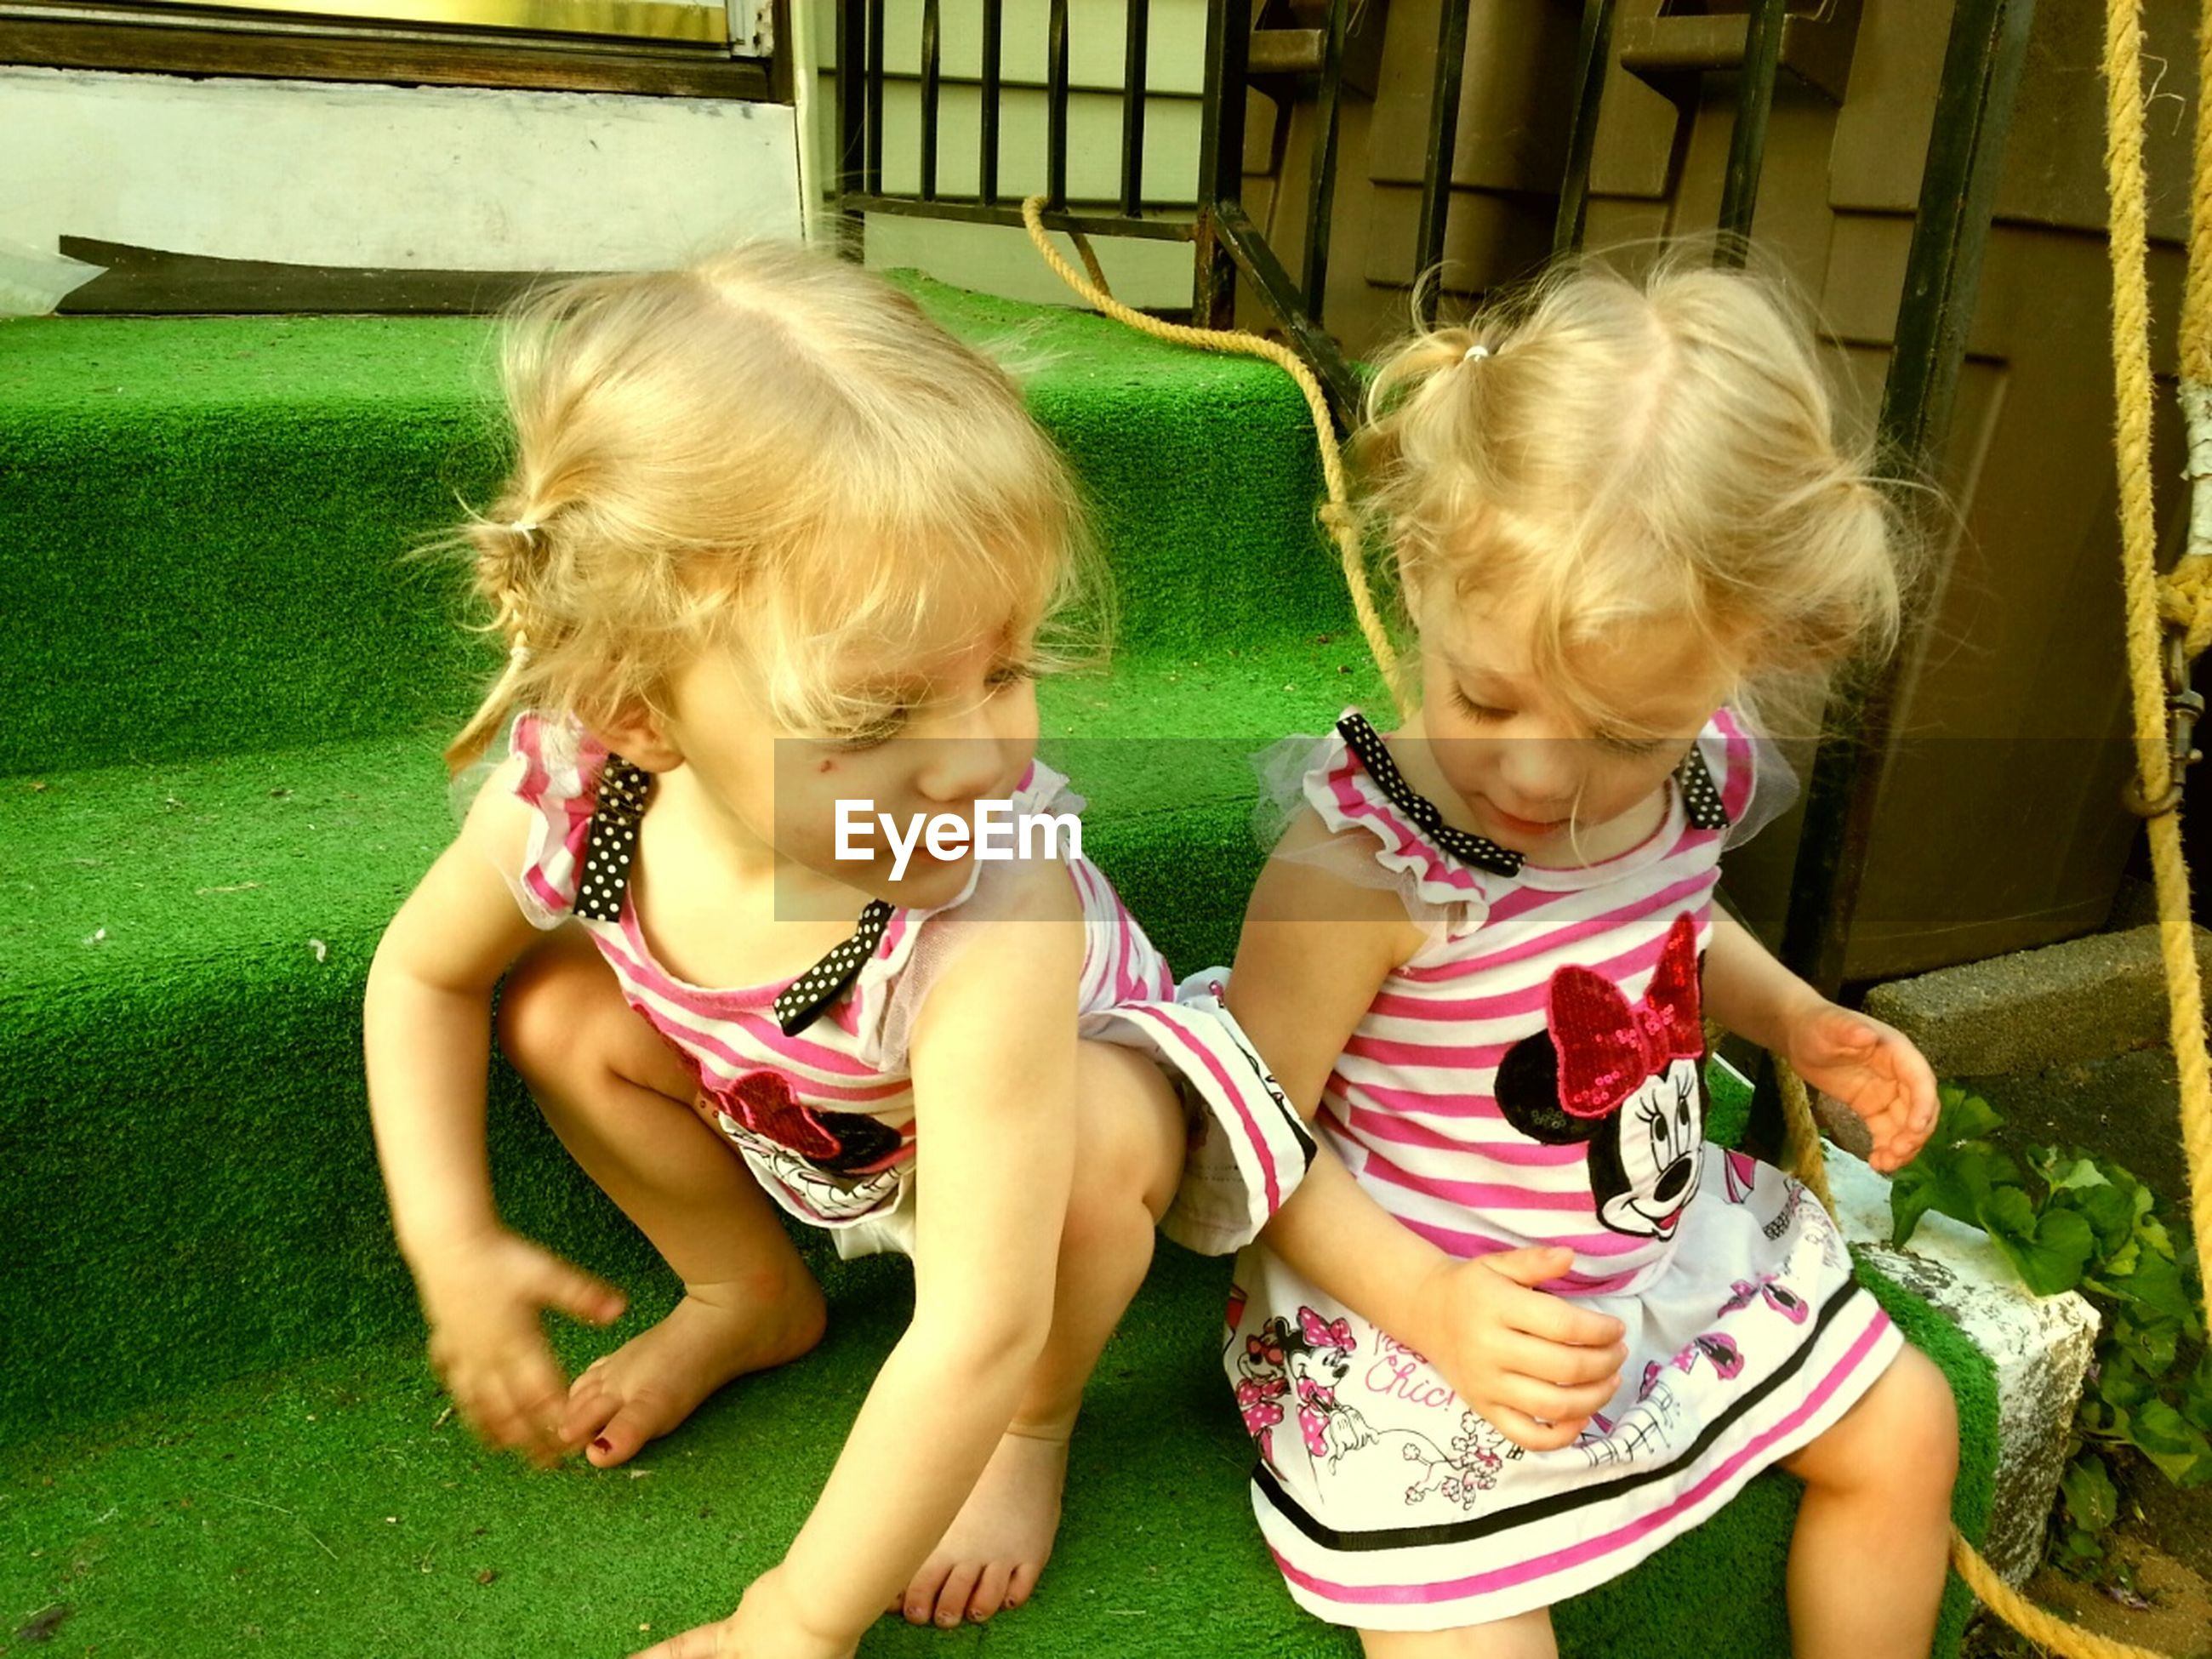 childhood, elementary age, girls, person, cute, innocence, lifestyles, leisure activity, boys, casual clothing, togetherness, bonding, preschool age, playful, playing, sitting, love